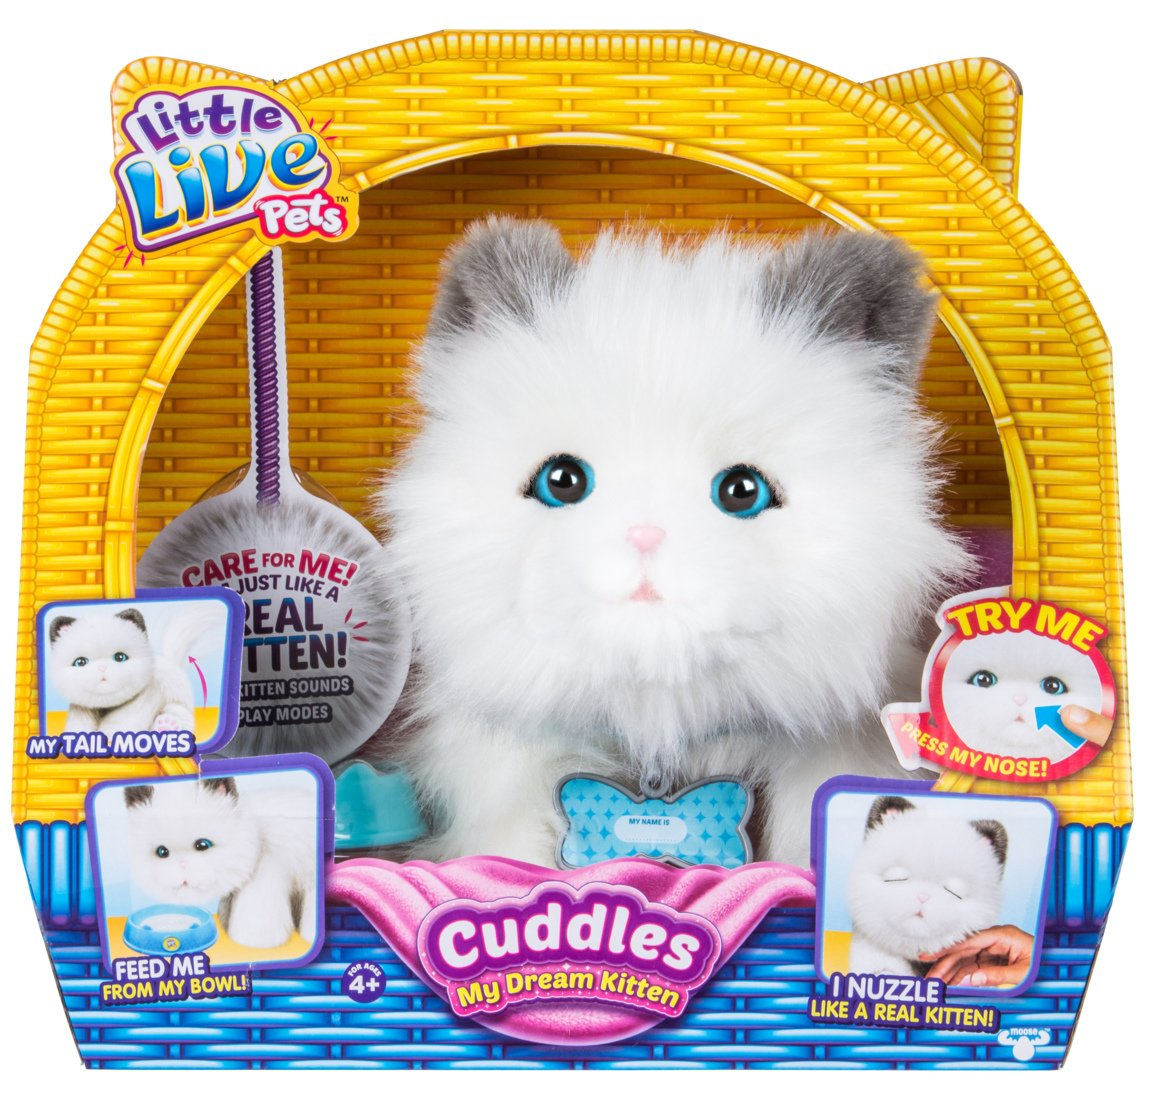 Amazon Little Live Pets Cuddles My Dream Kitten Toys & Games